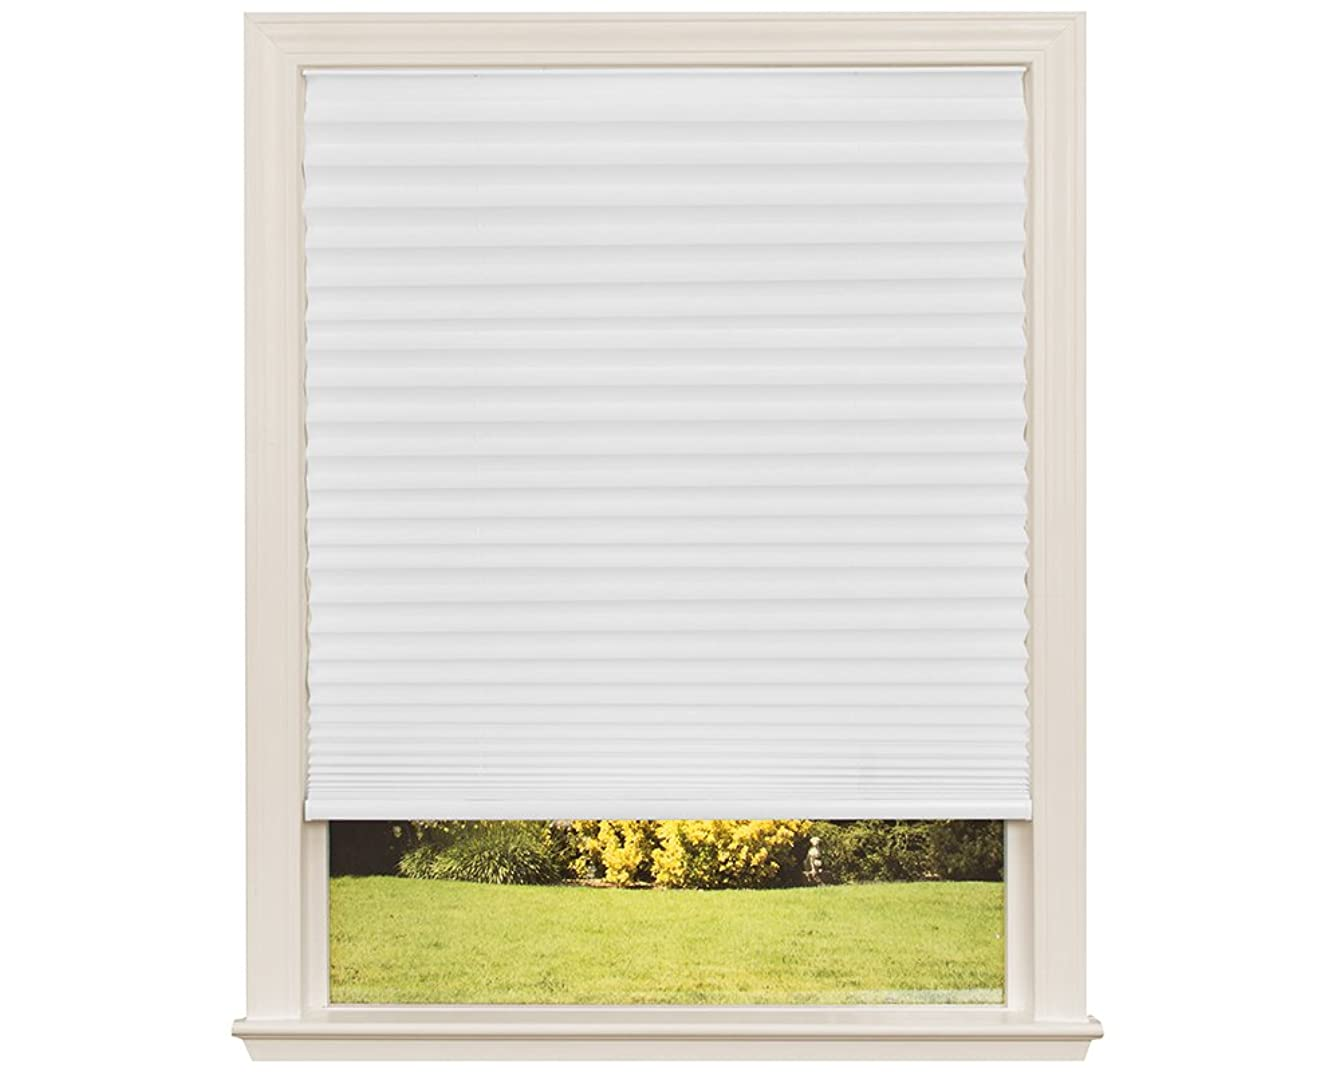 Easy Lift Trim-at-Home Cordless Pleated Light Filtering Fabric Shade White, 30 in x 64 in, (Fits windows 19